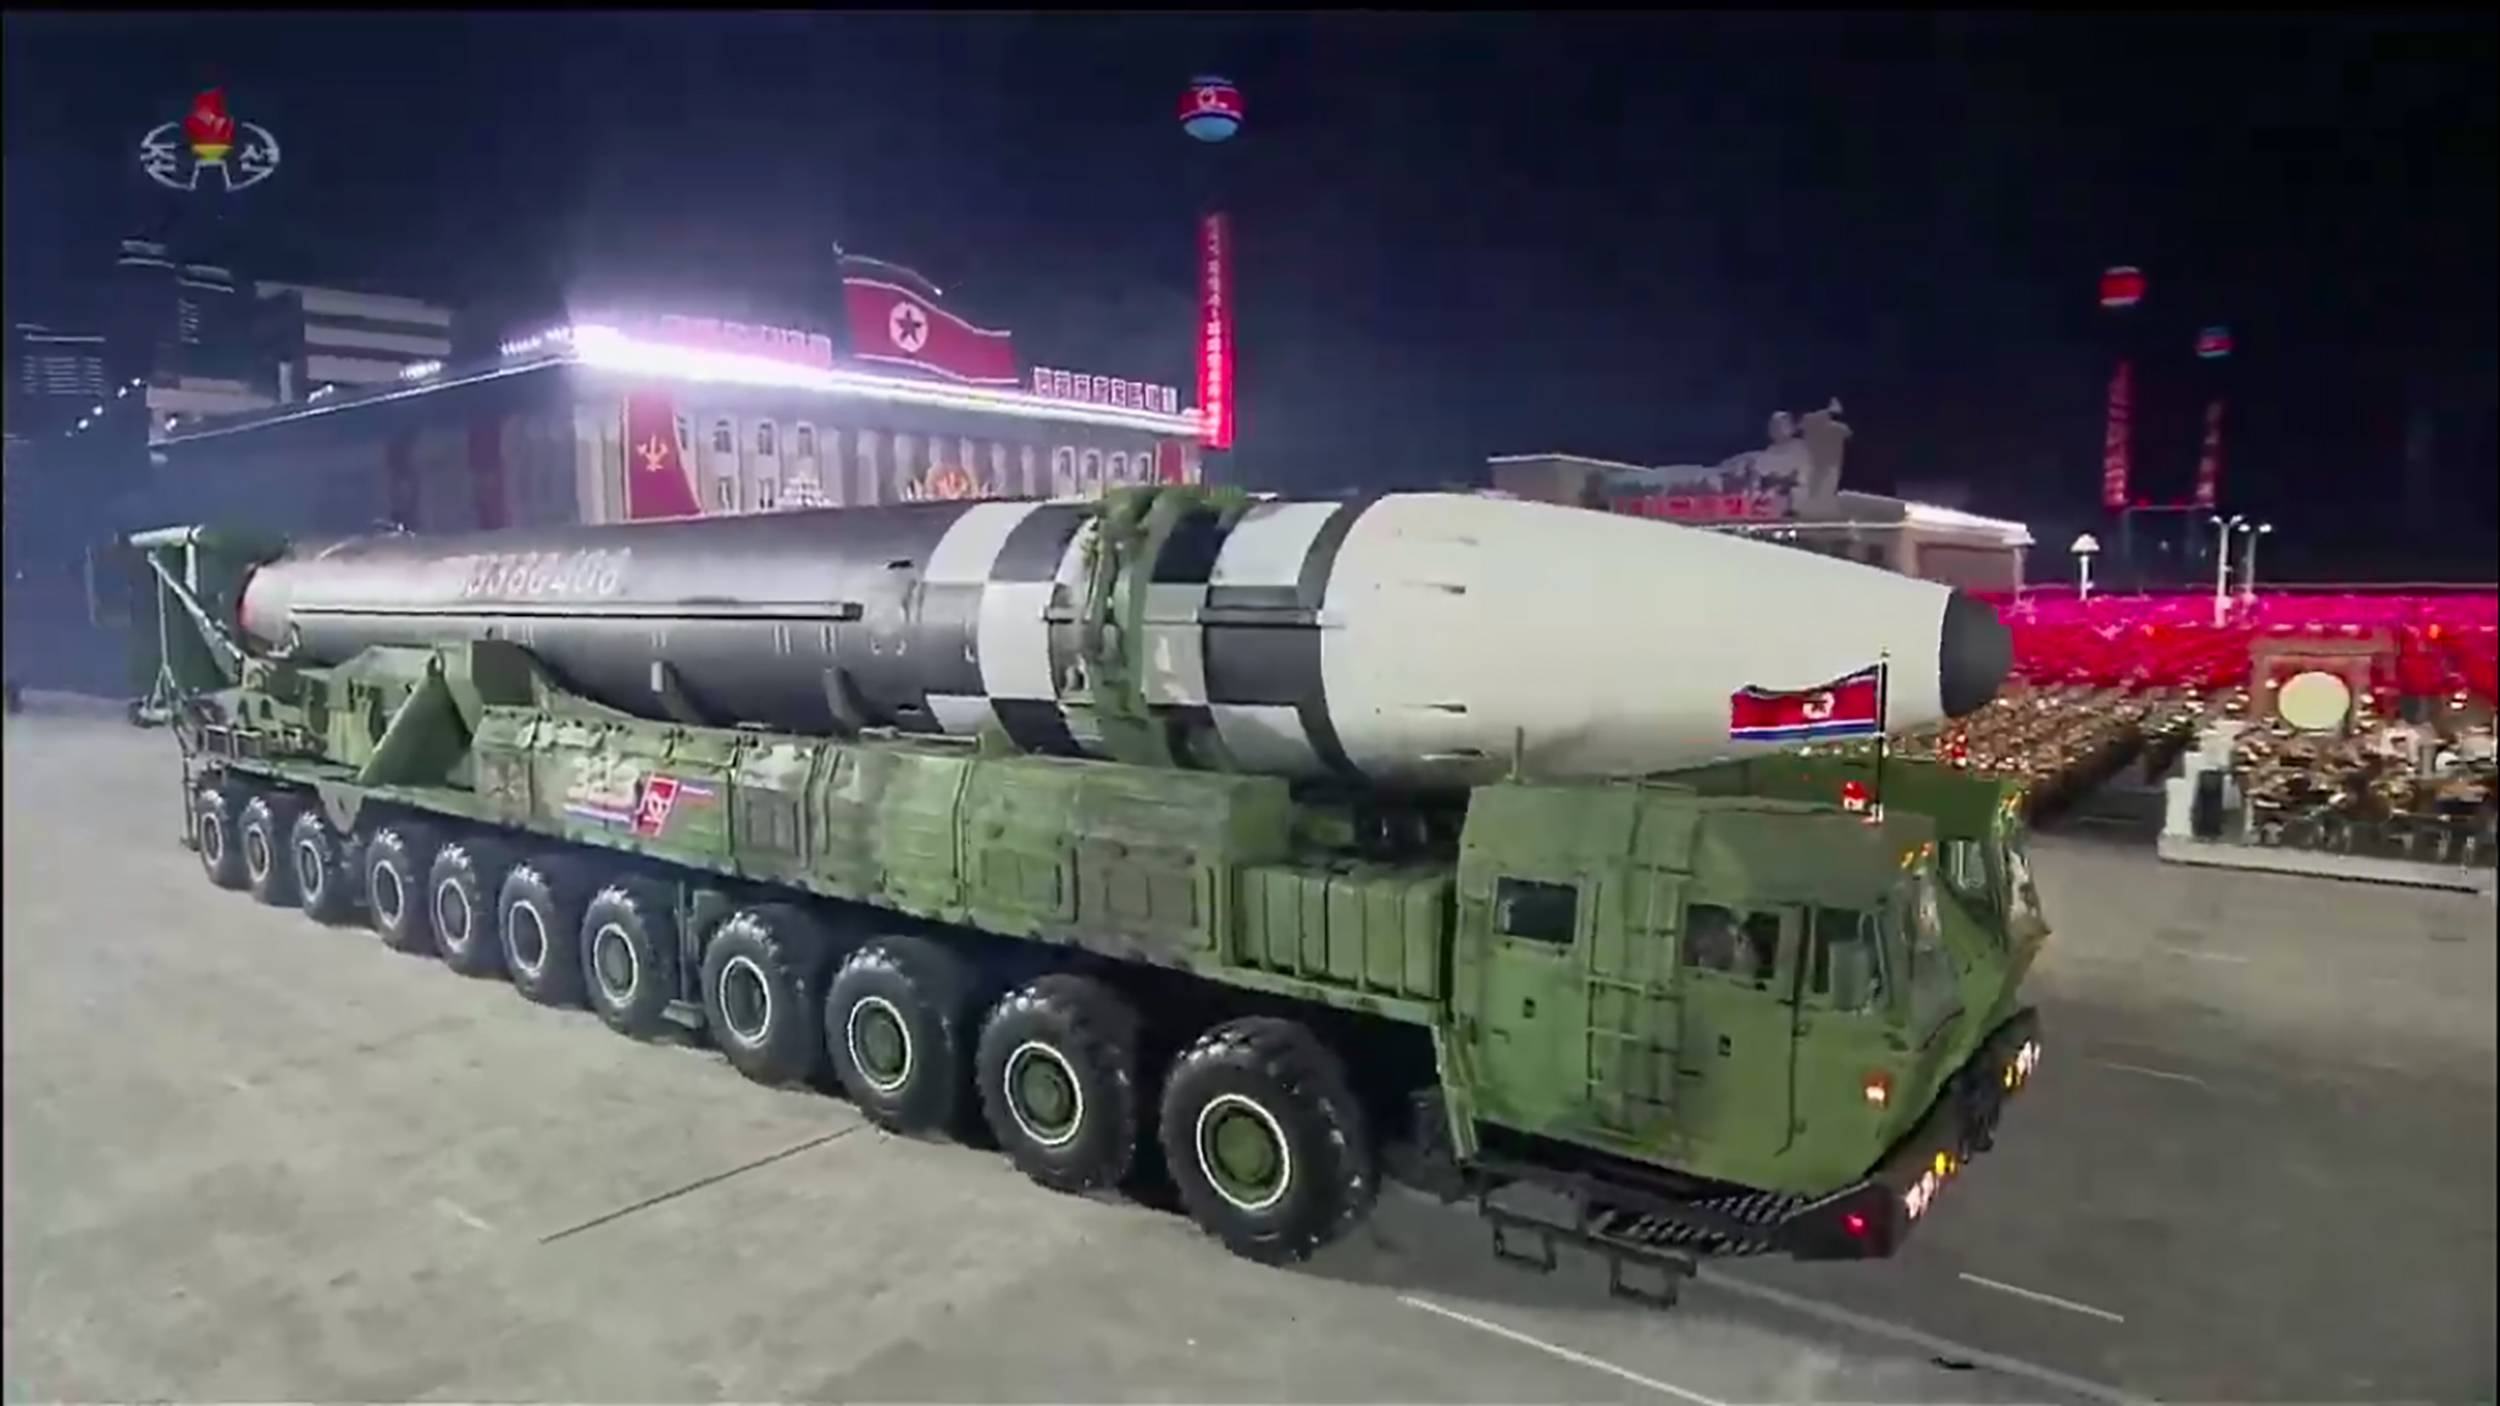 A new North Korean intercontinental ballistic missile is displayed during a military parade marking the 75th anniversary of the founding of the Workers' Party of Korea, in Pyongyang's Kim Il Sung Square on Saturday. | KCNA / KNS / VIA AFP-JIJI